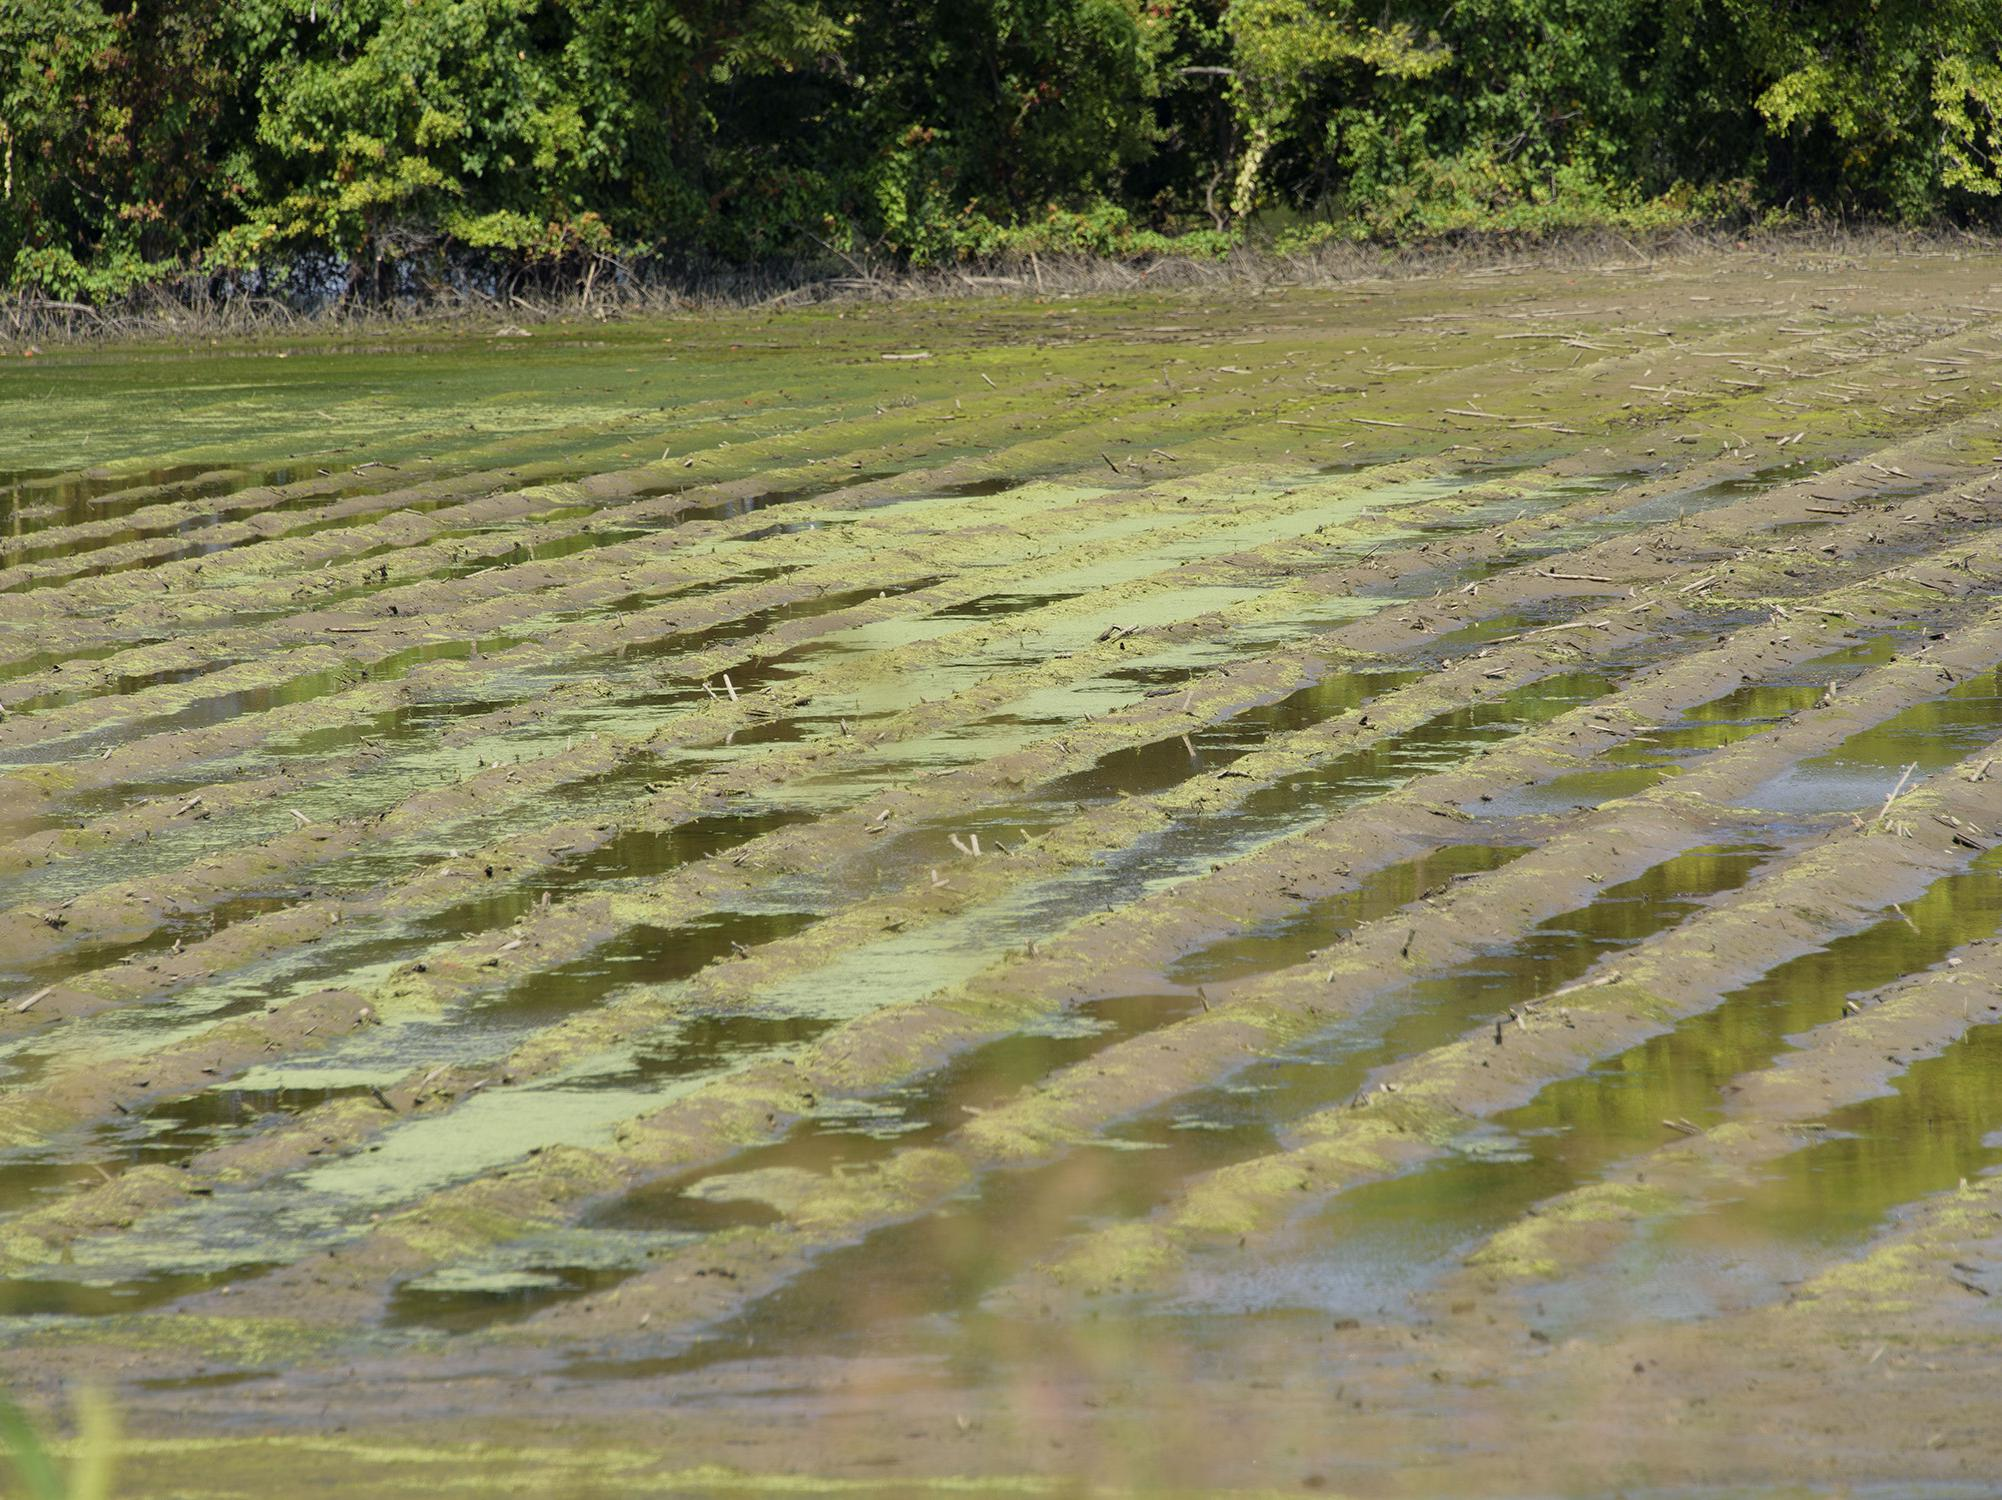 A muddy field with standing water in its furrows.